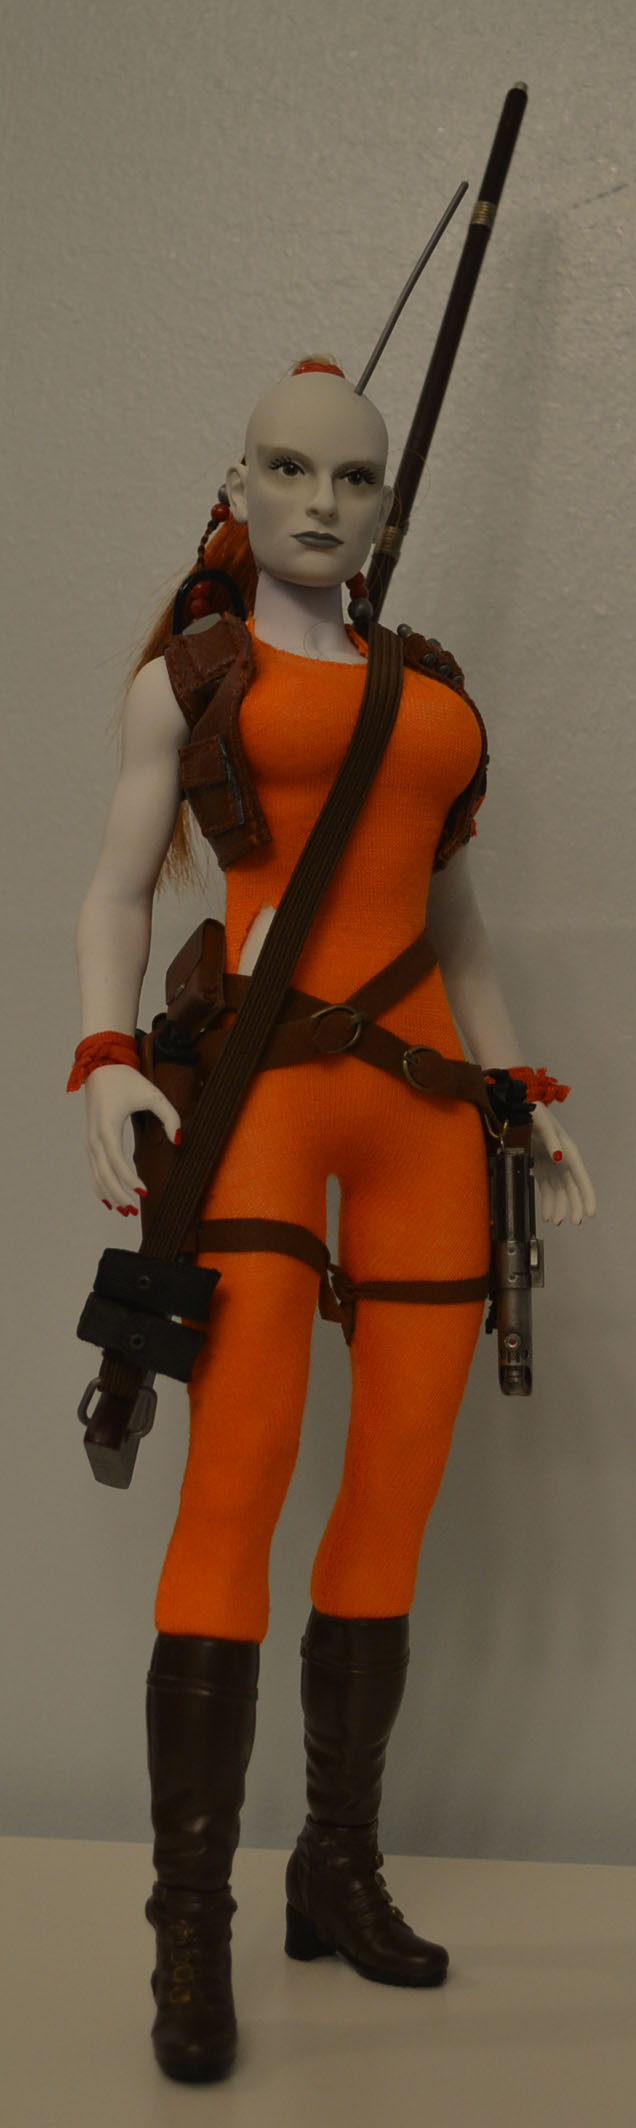 bountyhunter - Custom/Kitbash: Aurra Sing - Star Wars Bounty Hunter (Episode I) _dsc3128